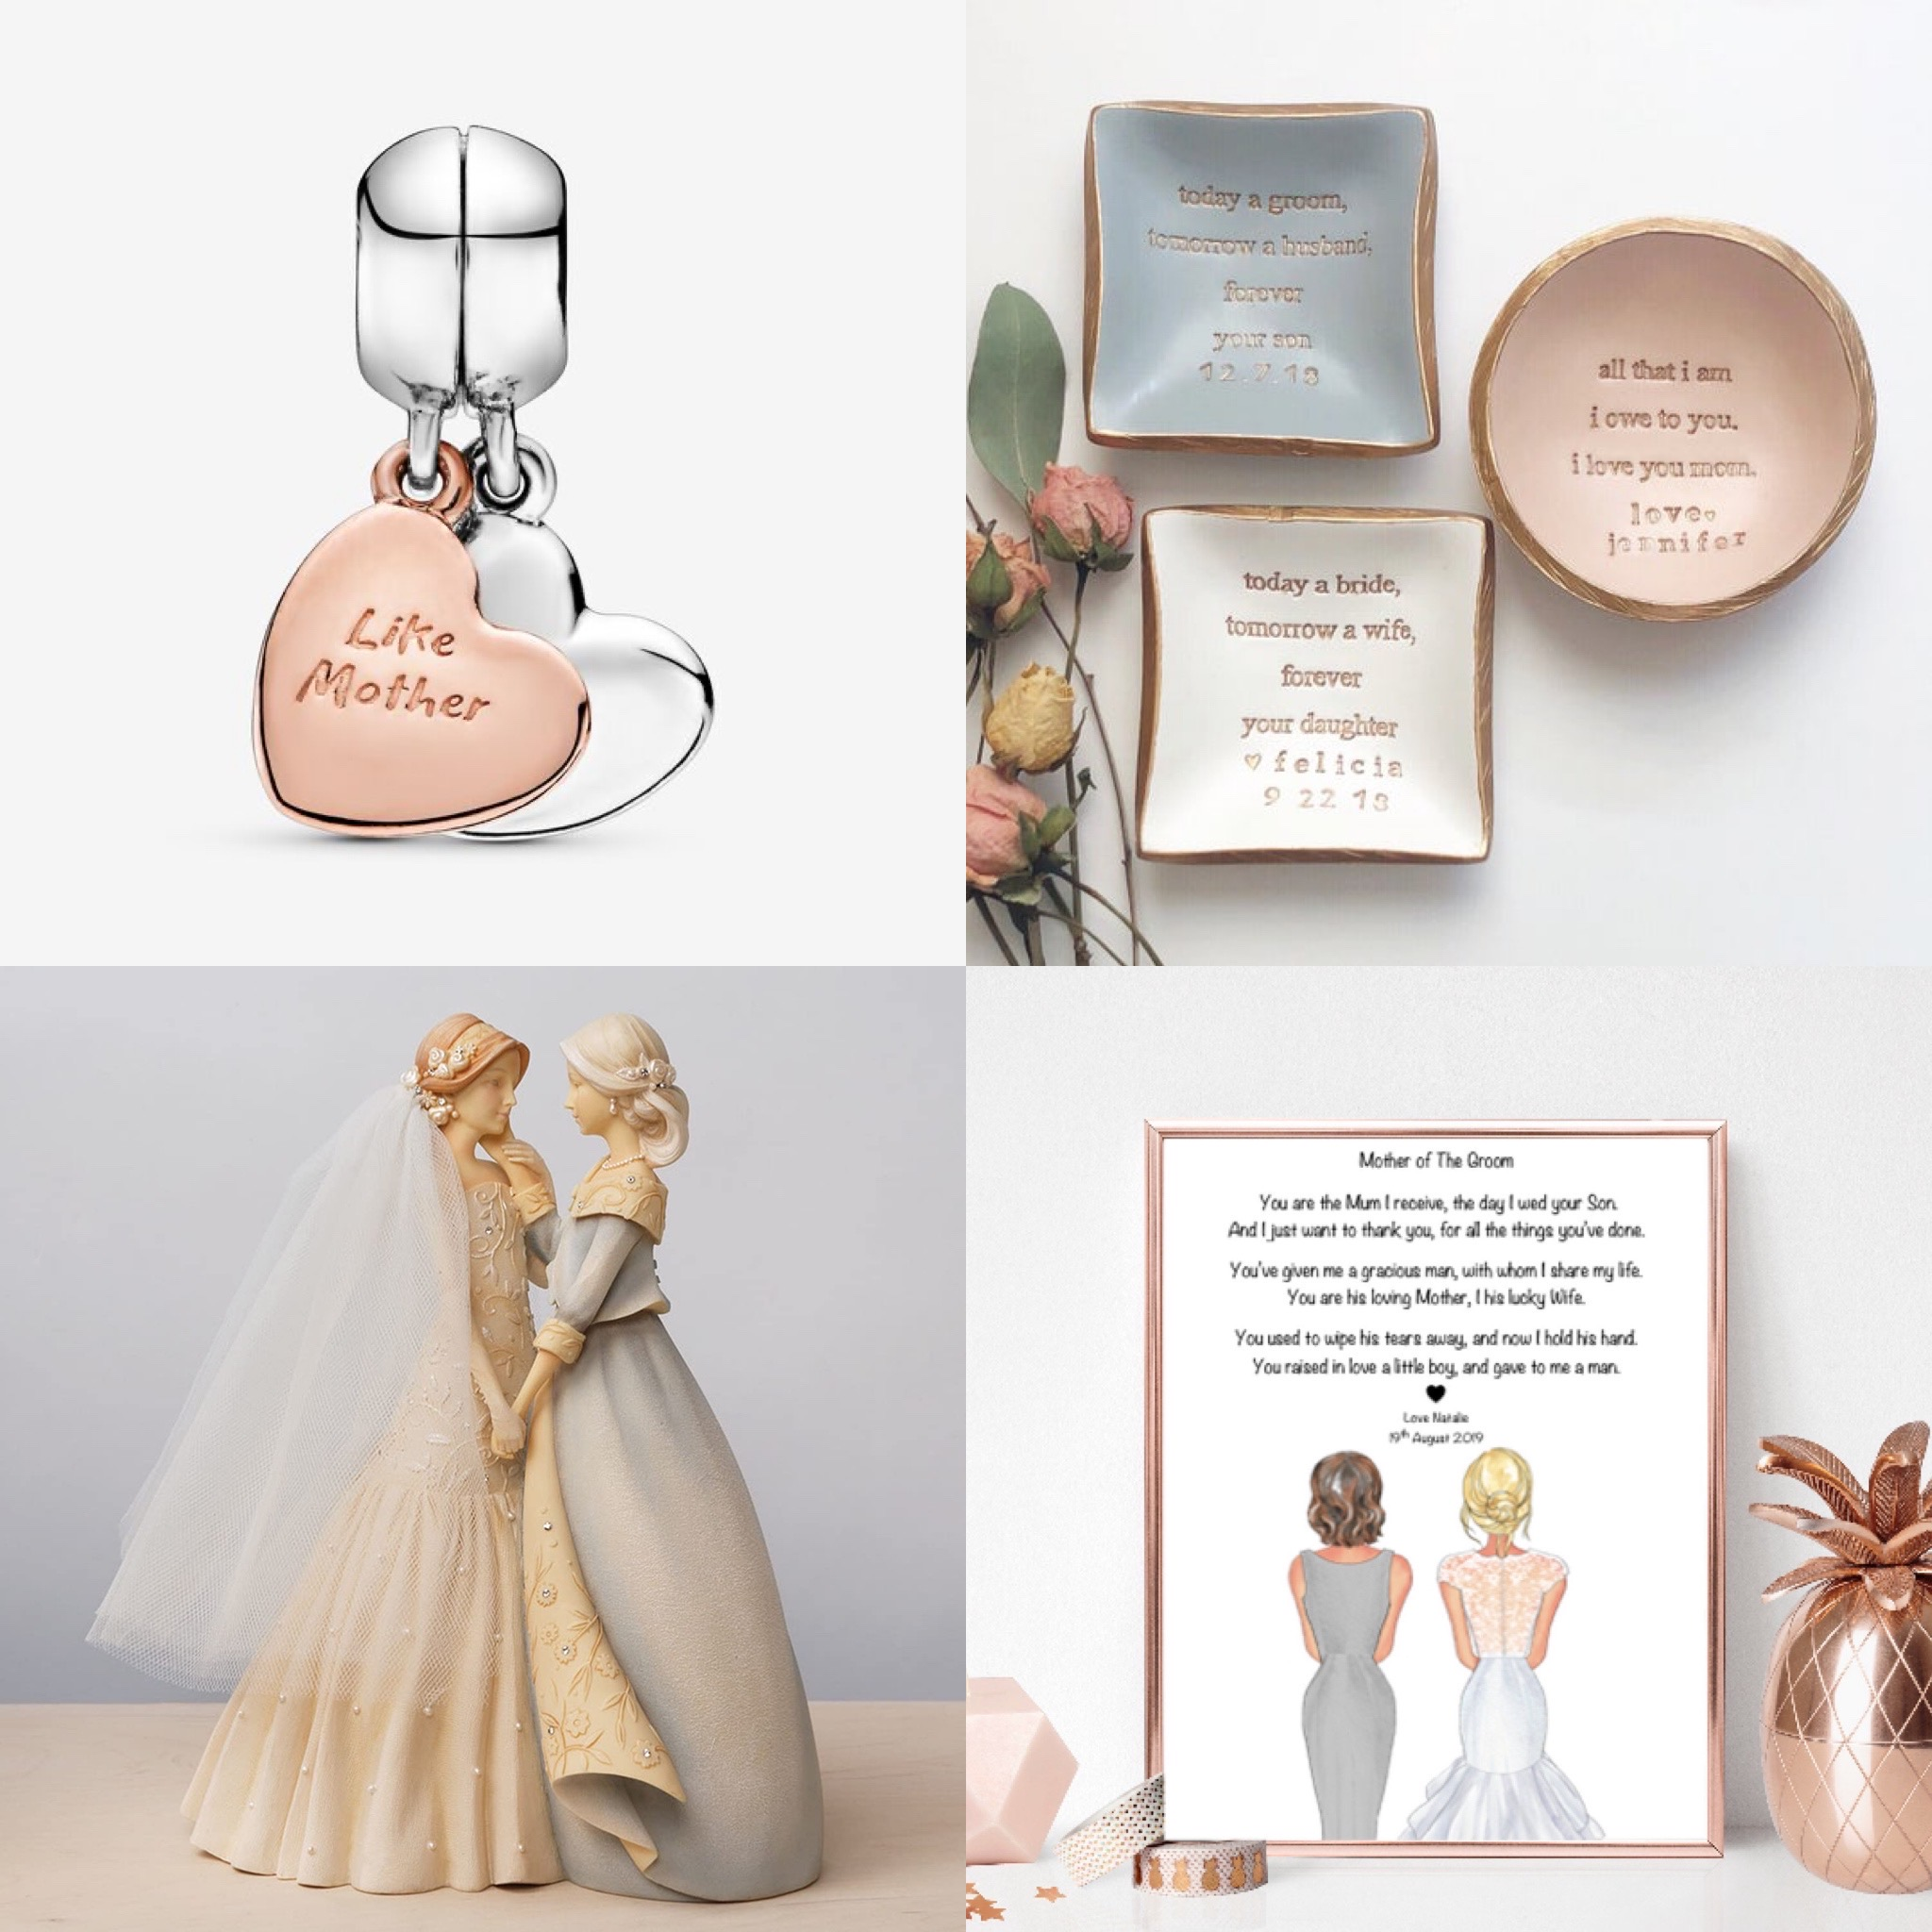 Jewellery, trinkets and a framed picture, wedding gifts for the Mother of the bride.